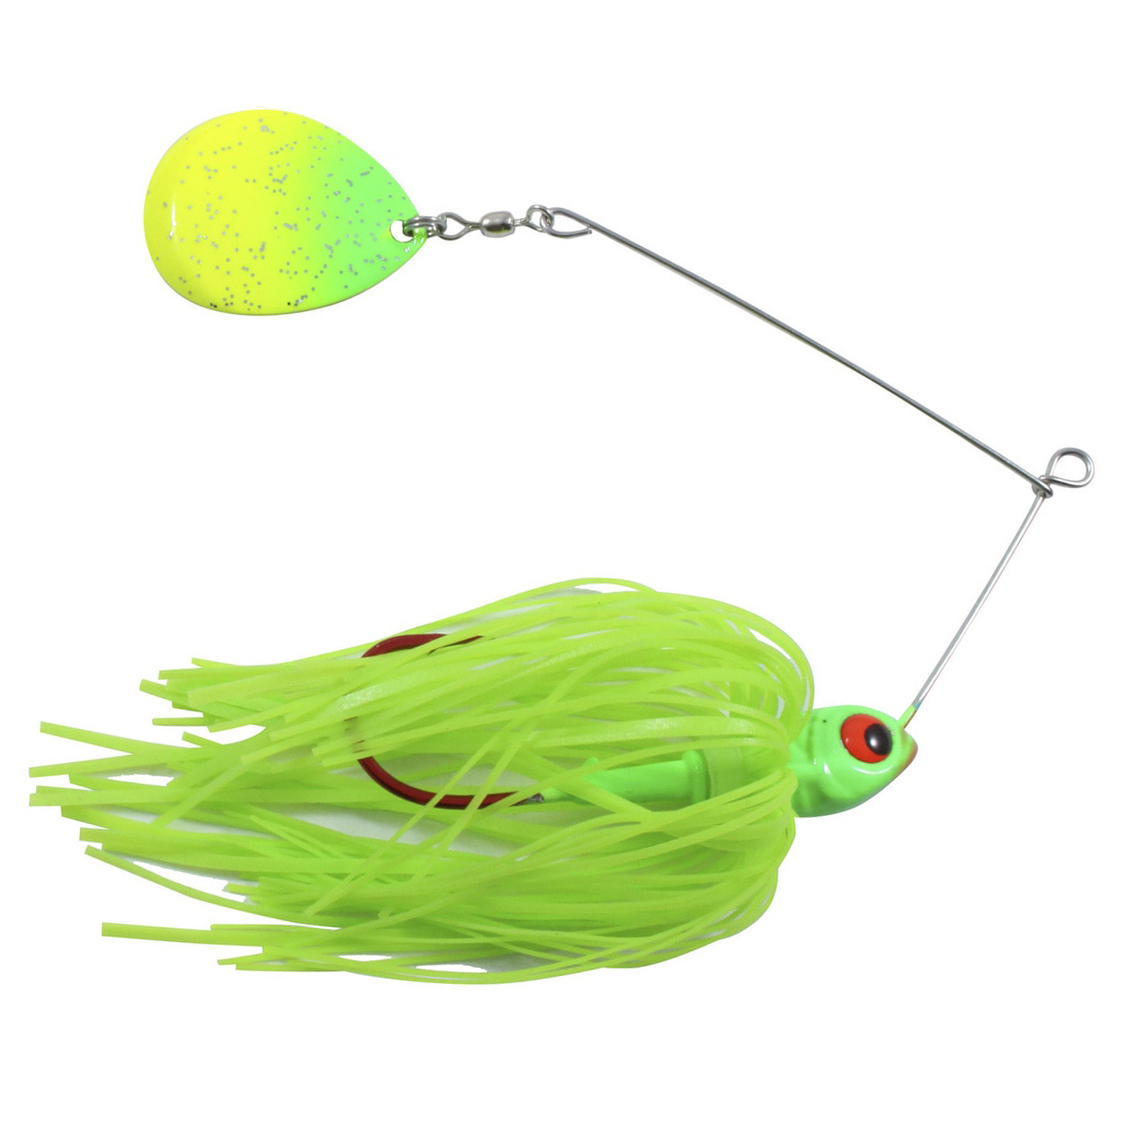 Northland Reed-Runner Single-Spin Spinnerbait 3/8 oz.